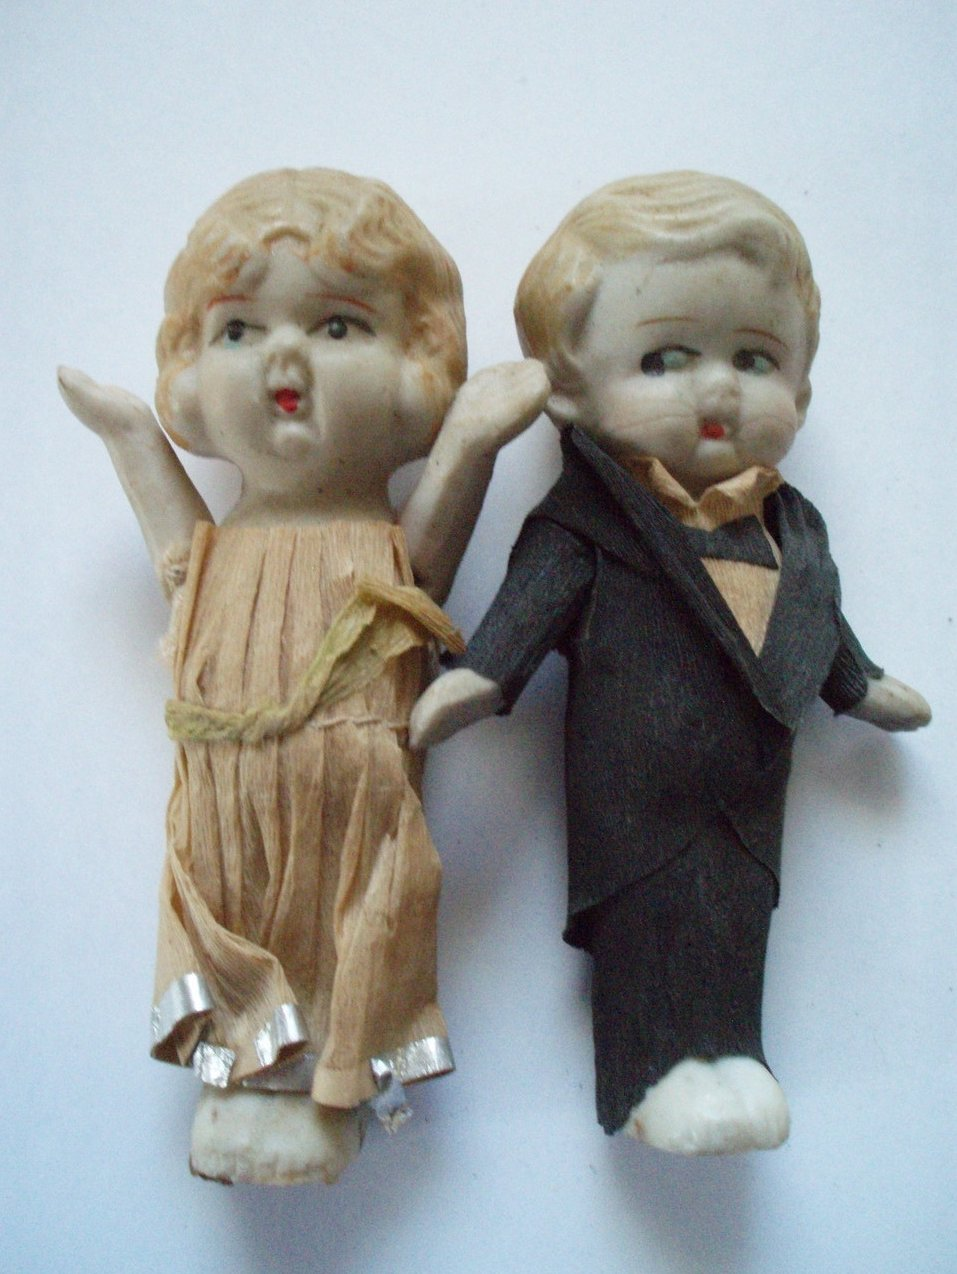 Antique Bisque bride and groom cake toppers wedding